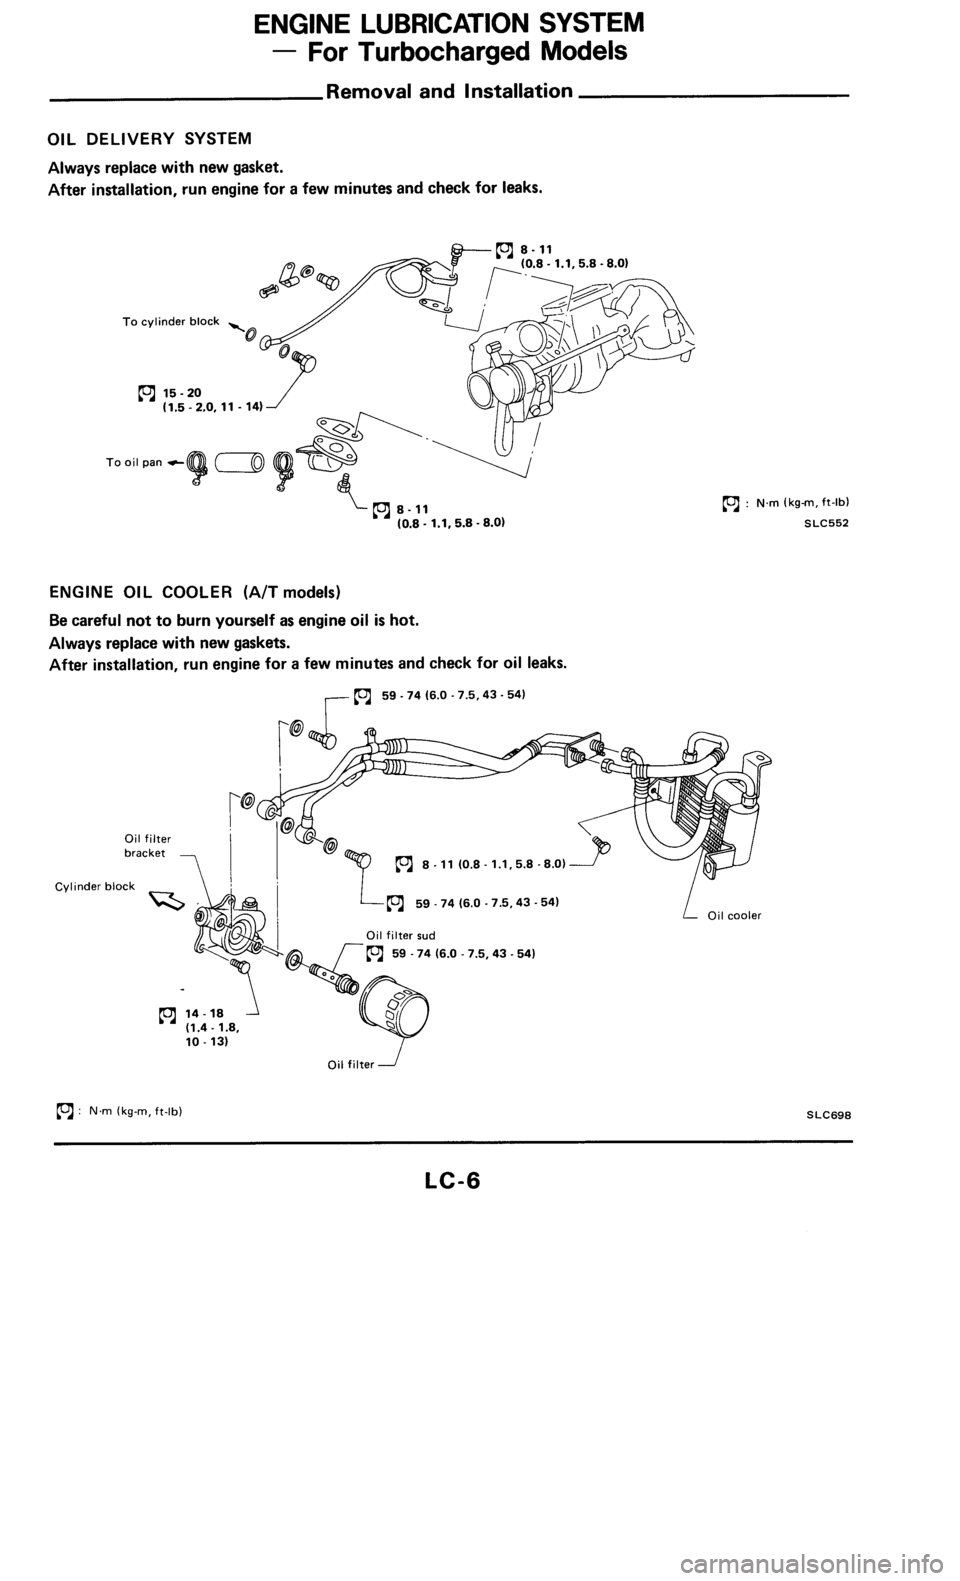 NISSAN 300ZX 1985 Z31 Engine Lubrication And Cooling System Workshop Manual, Page 6